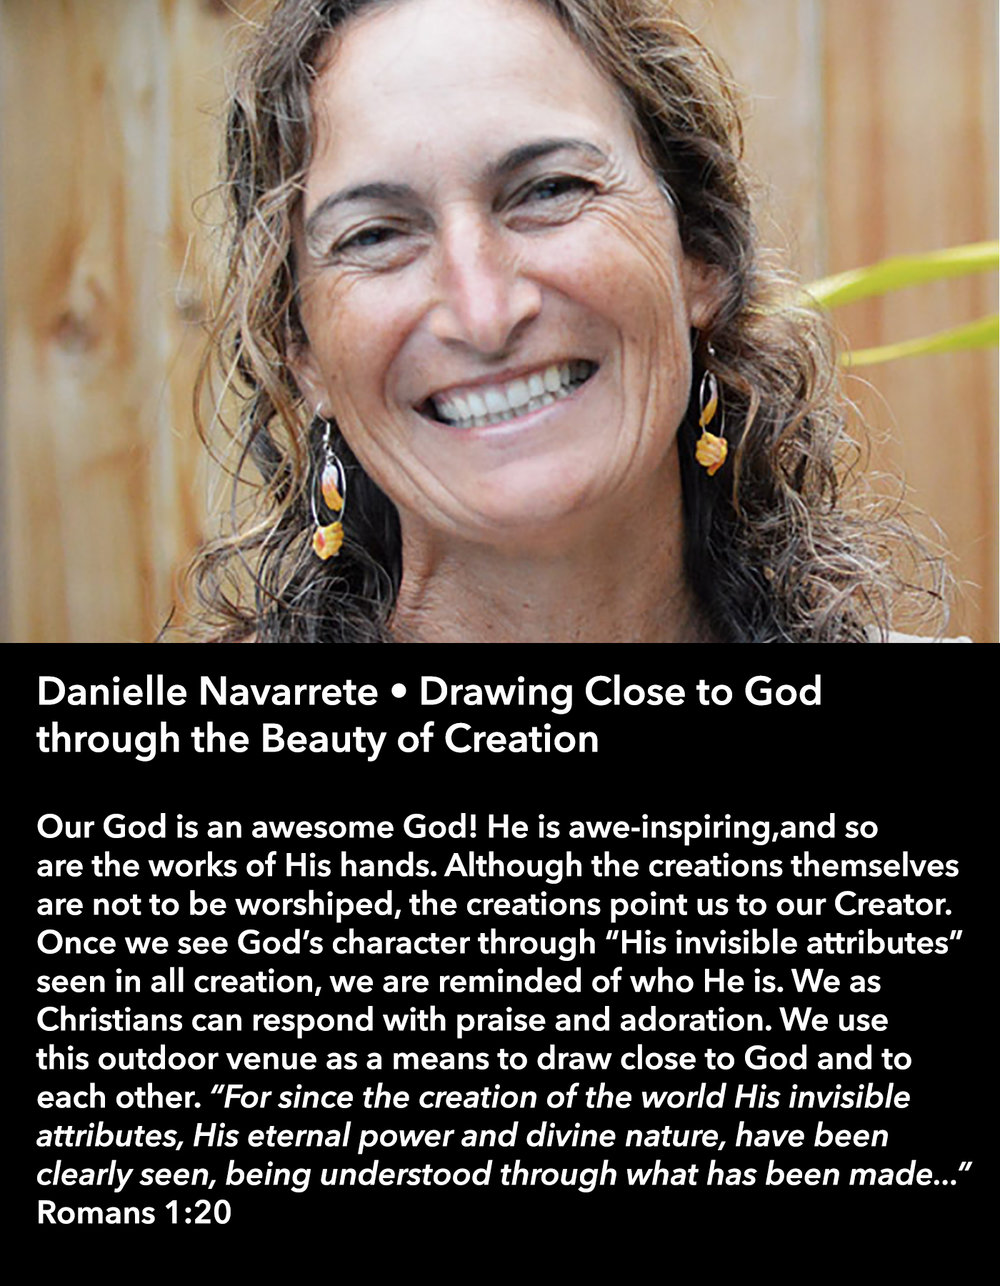 Danielle Navarrete • Drawing Close to God through the Beauty of Creation • Friday Afternoon, March 17 • 3:30 – 4:45 pm